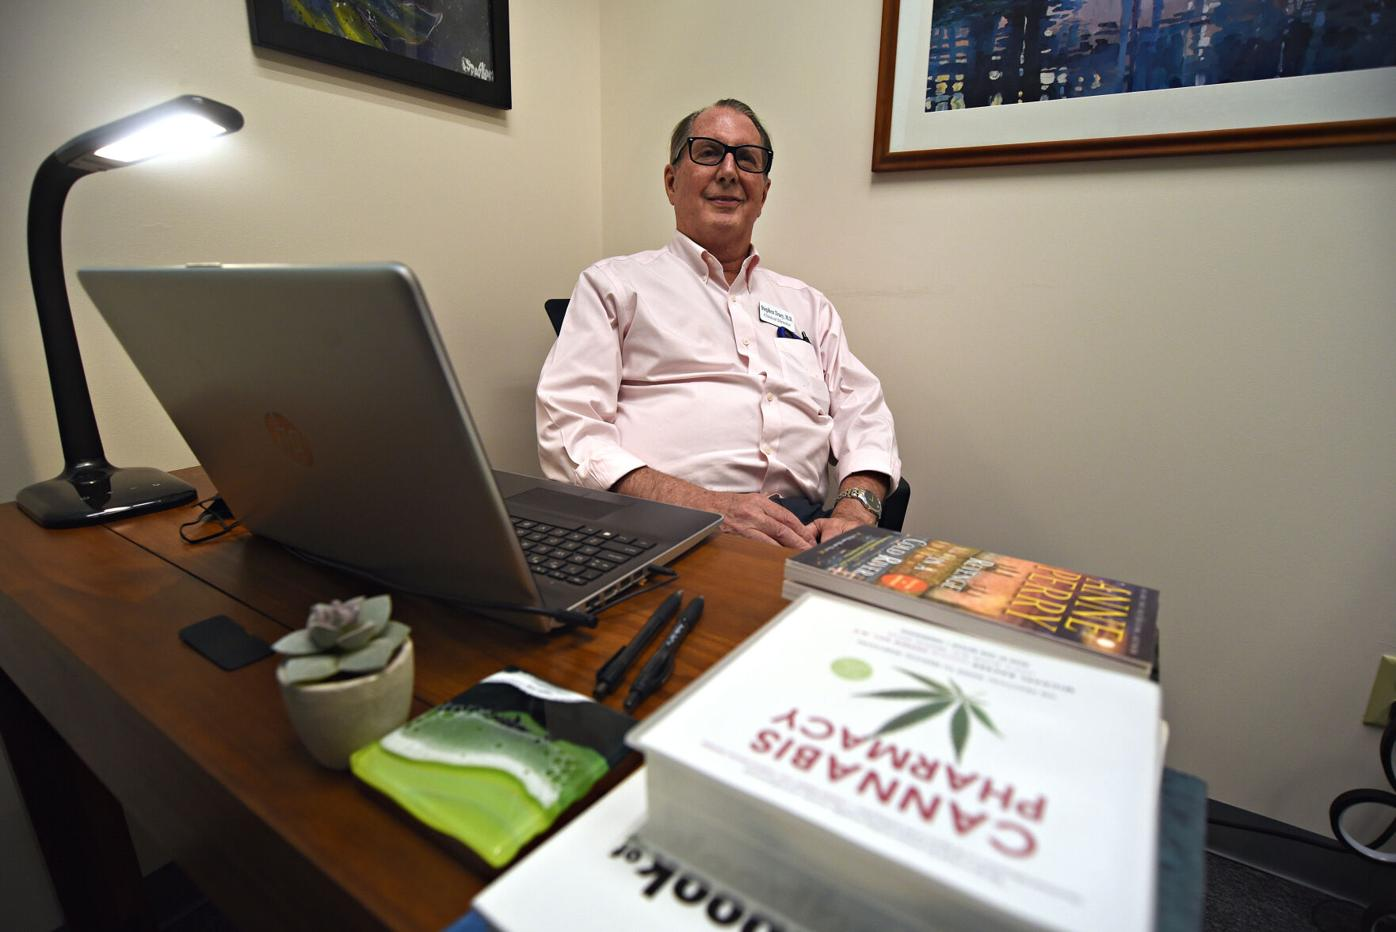 Dr. Stephen Tracy behind his desk at Berkshire Cannabis Connect in Pittsfield